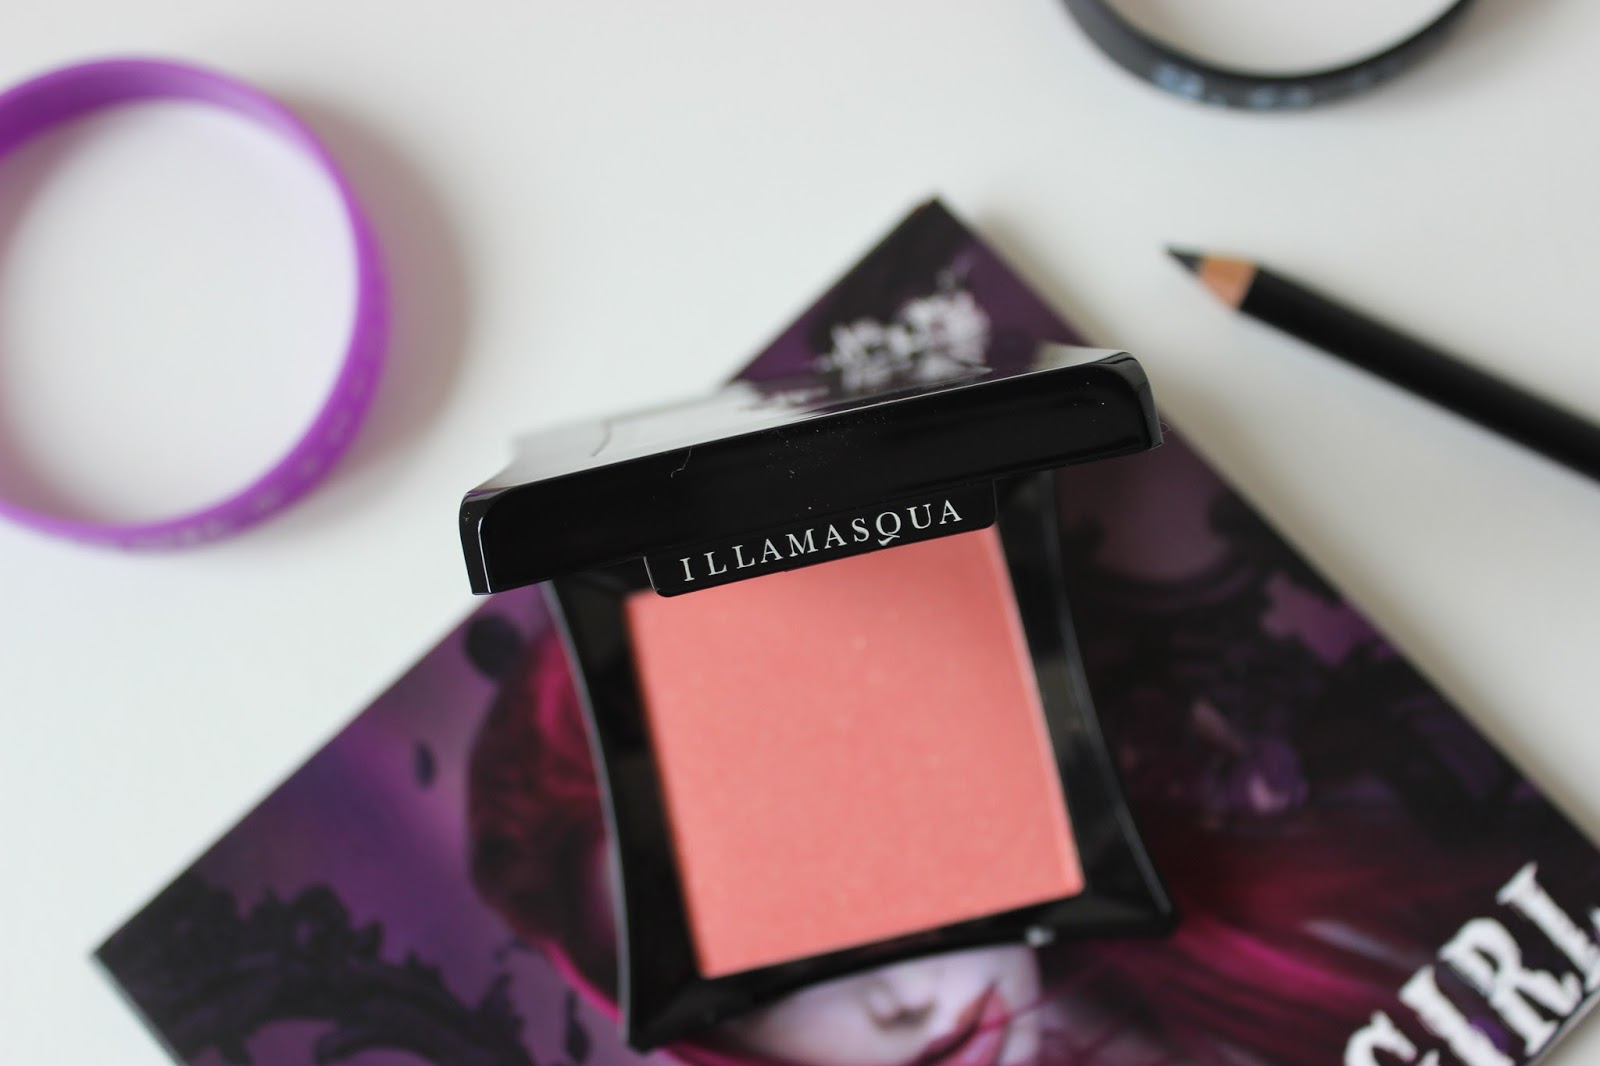 A picture of Illamasqua S.O.P.H.I.E Powder Blusher